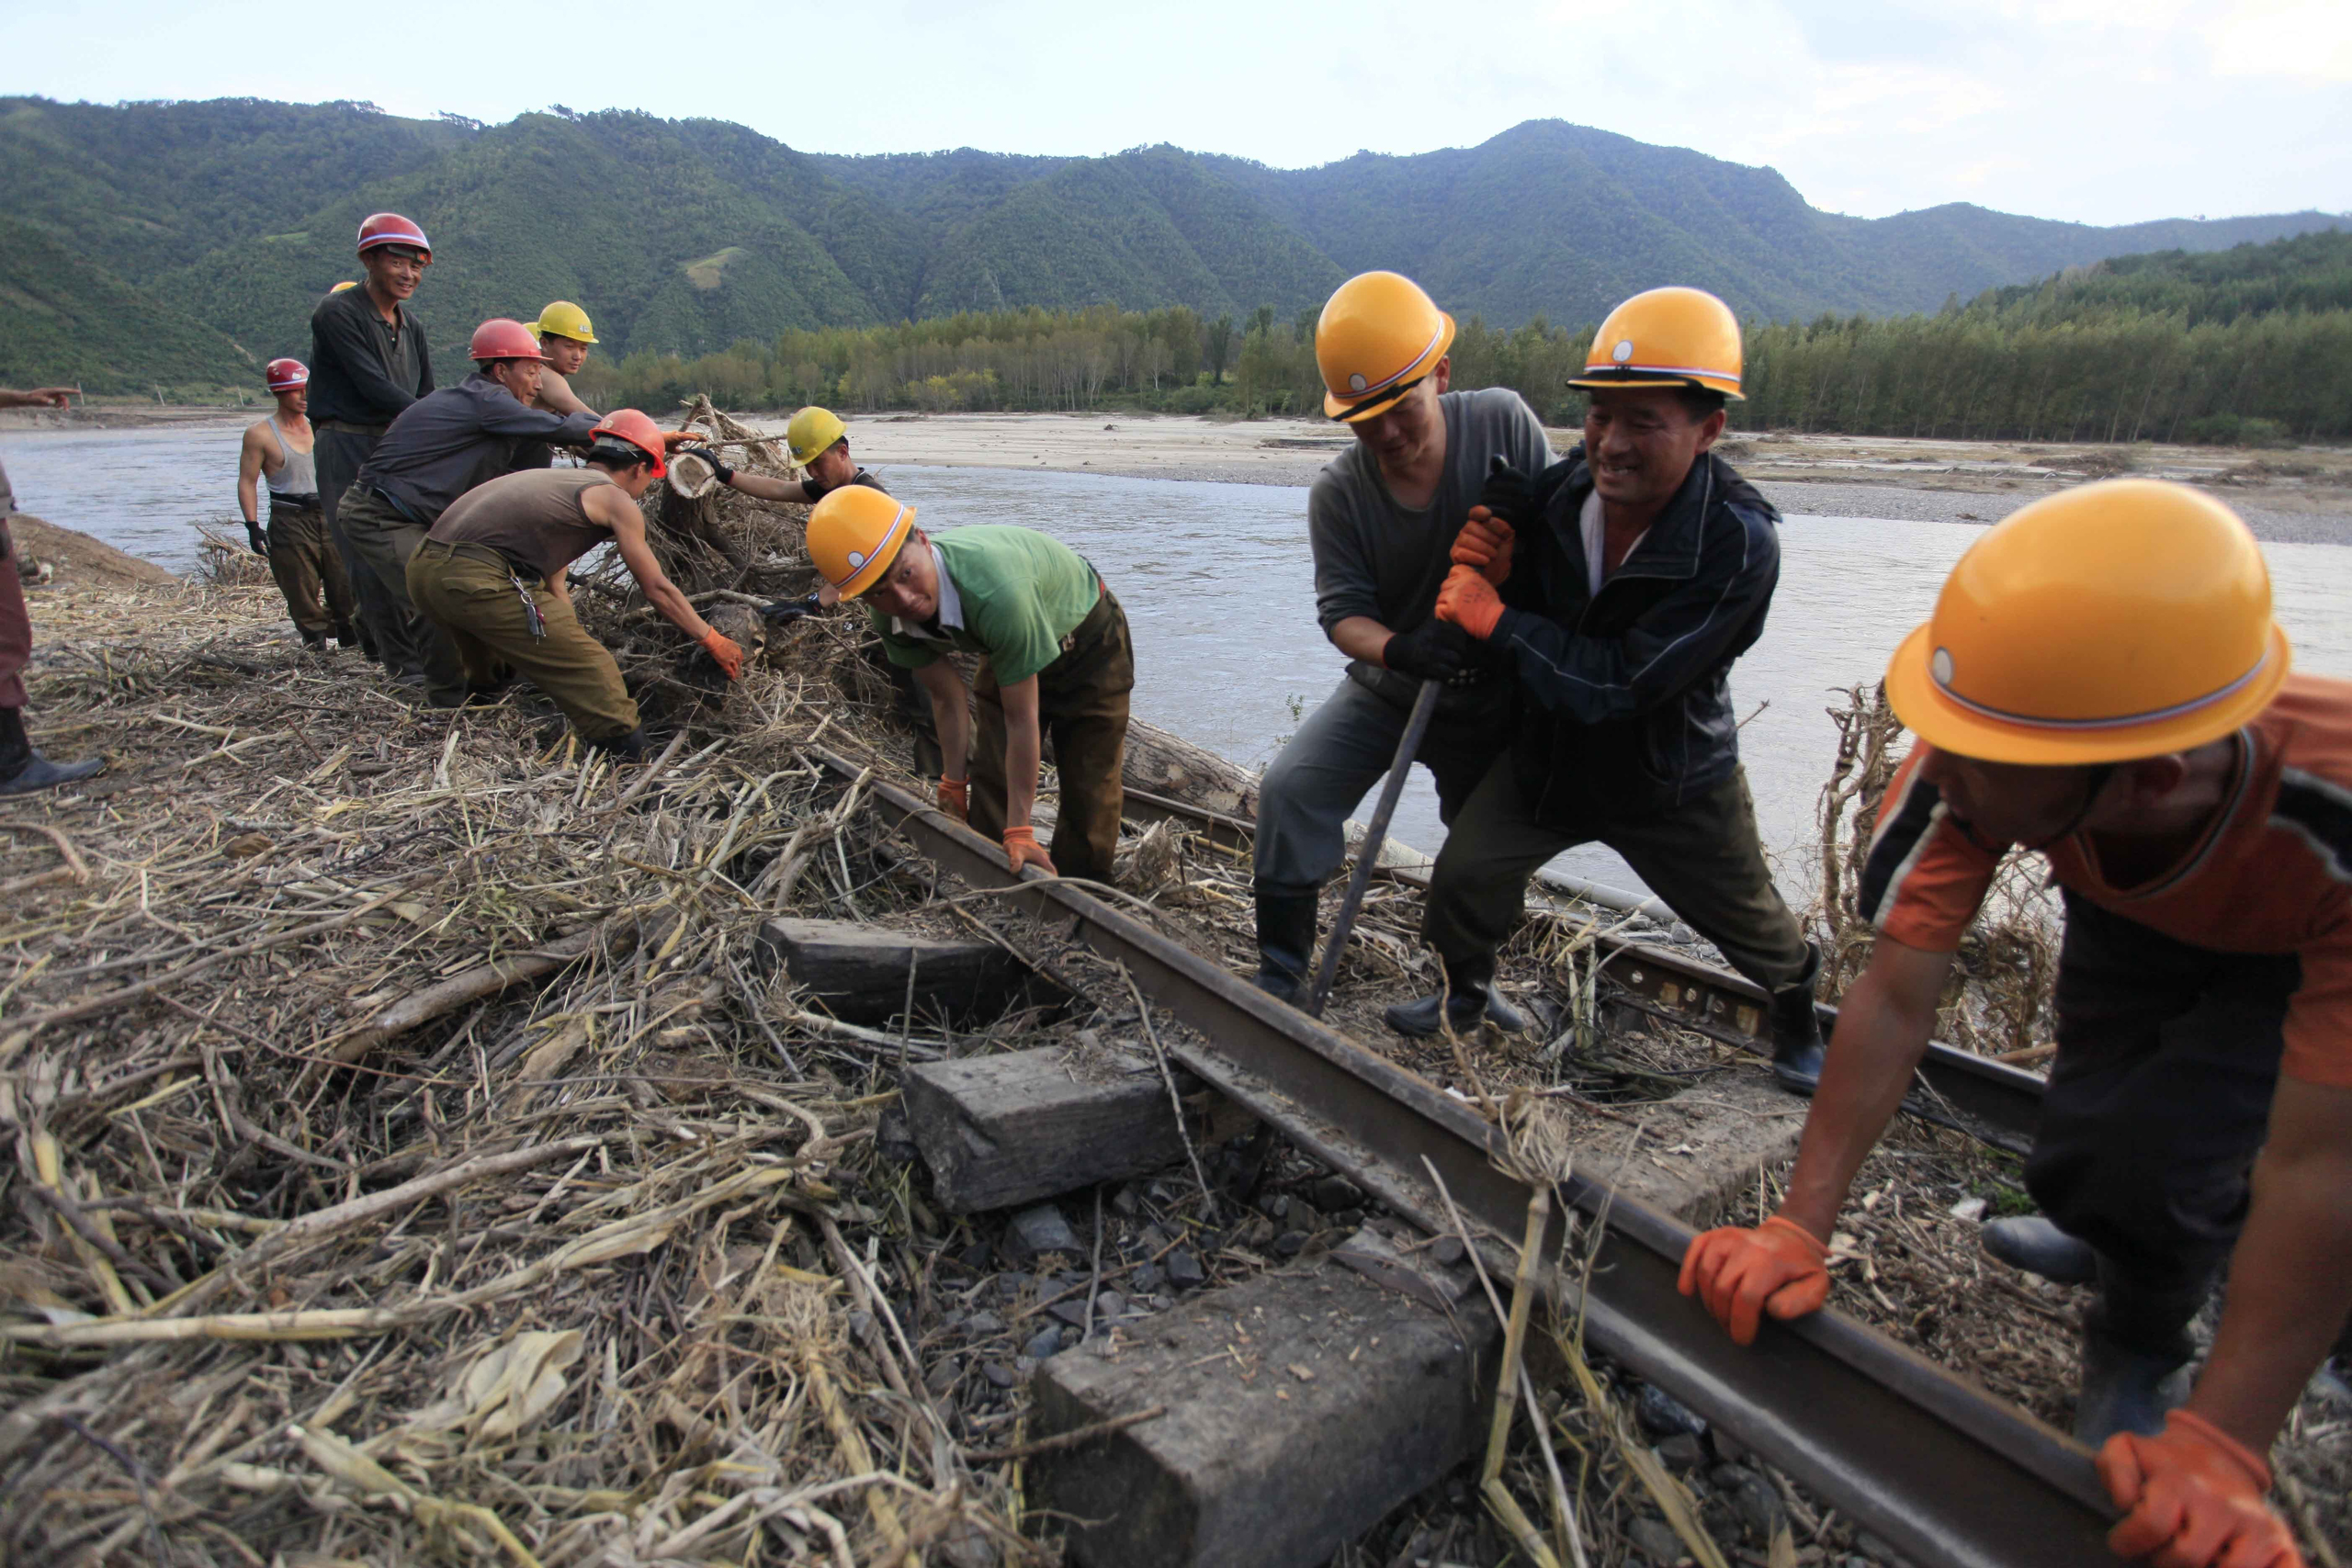 Workers repair the flood-damaged train track between Sinjon and Kanphyong train stations in North Hamgyong Province, North Korea, on Sept. 16, 2016.